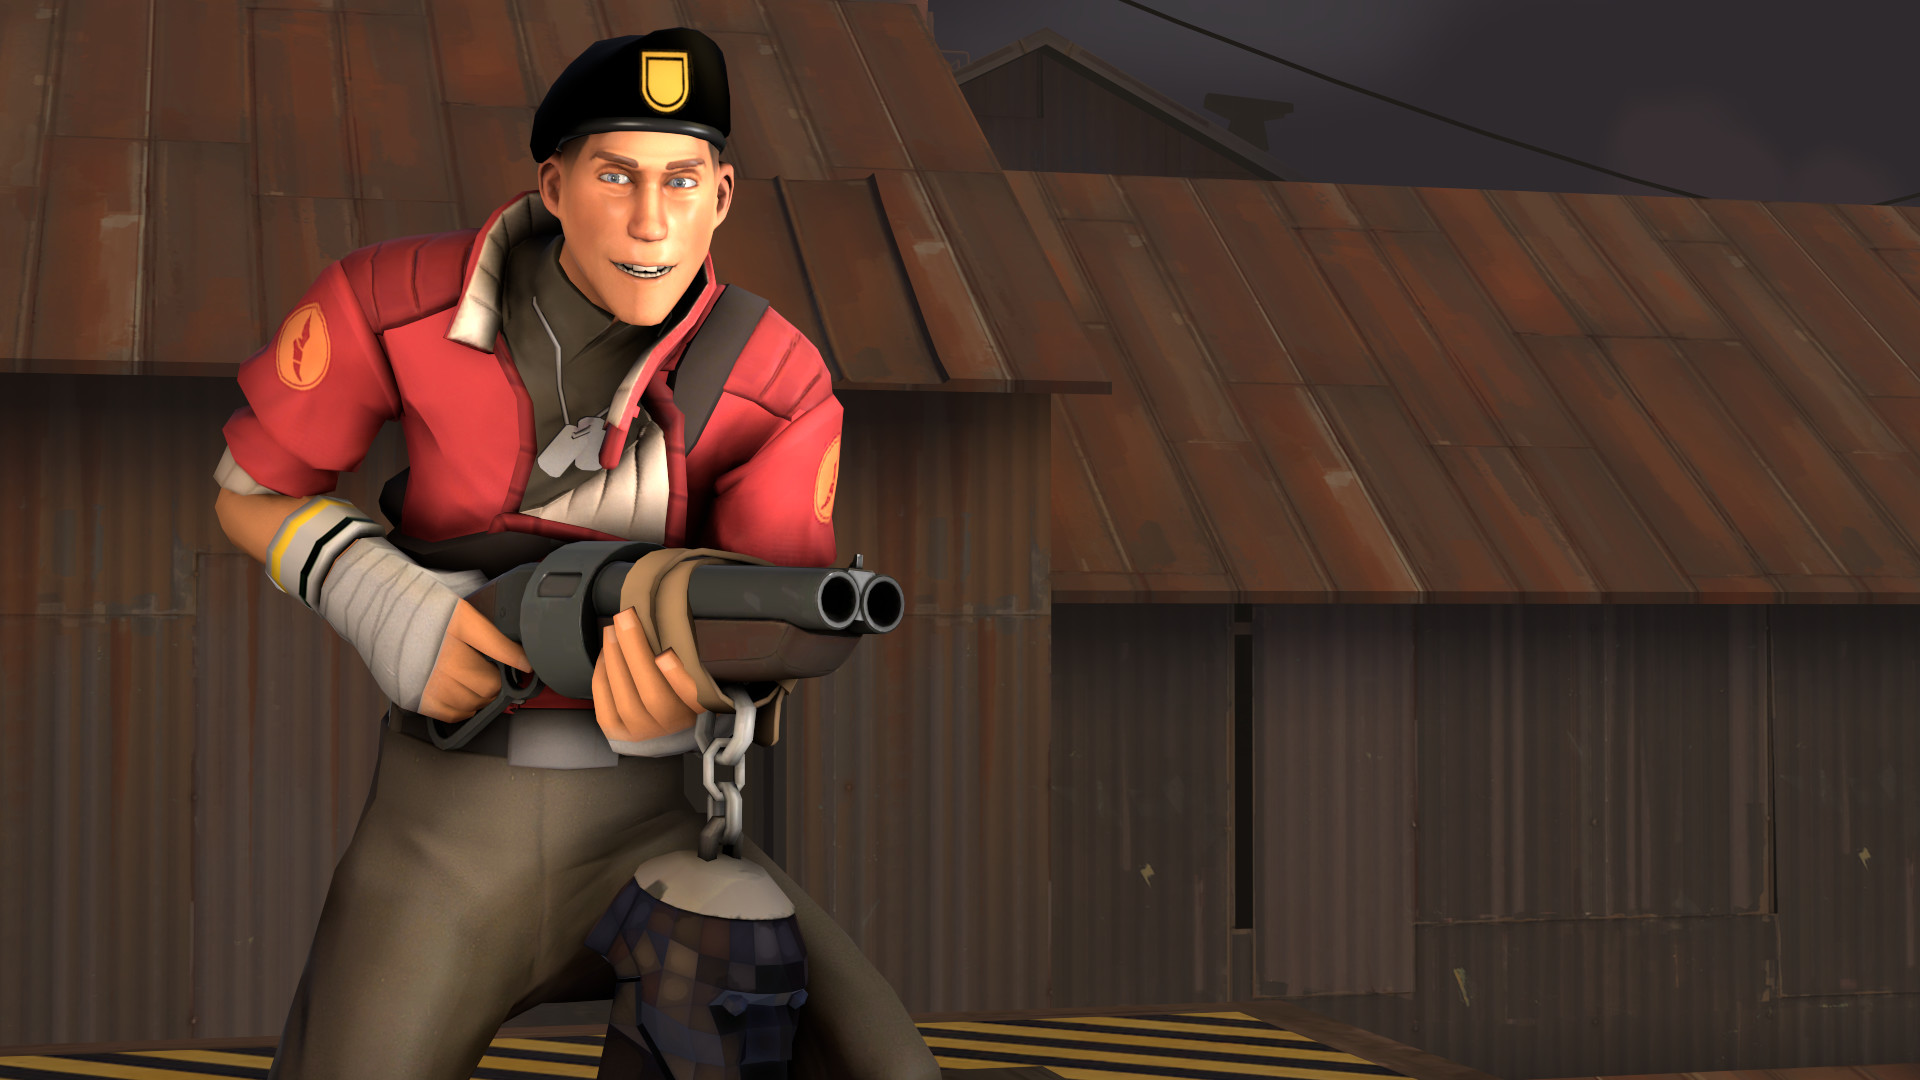 1920x1080 Tf2 Scout Wallpaper - WallpaperSafari